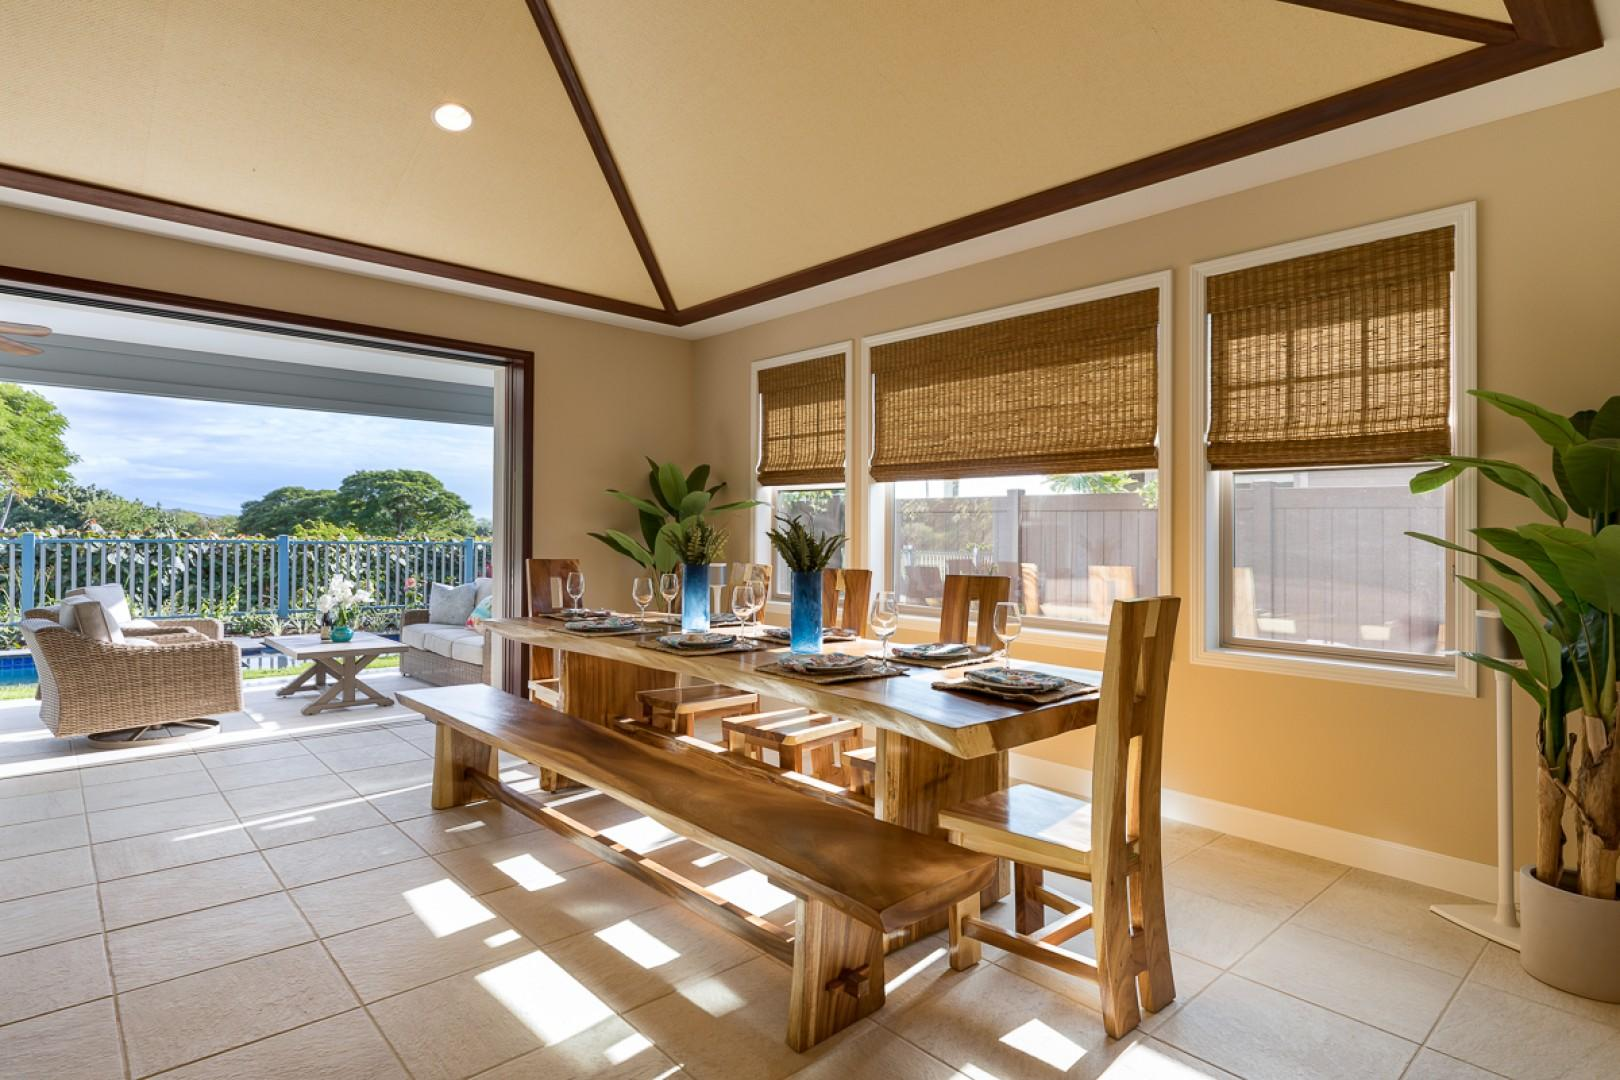 The spacious dining room, with the lanai beyond